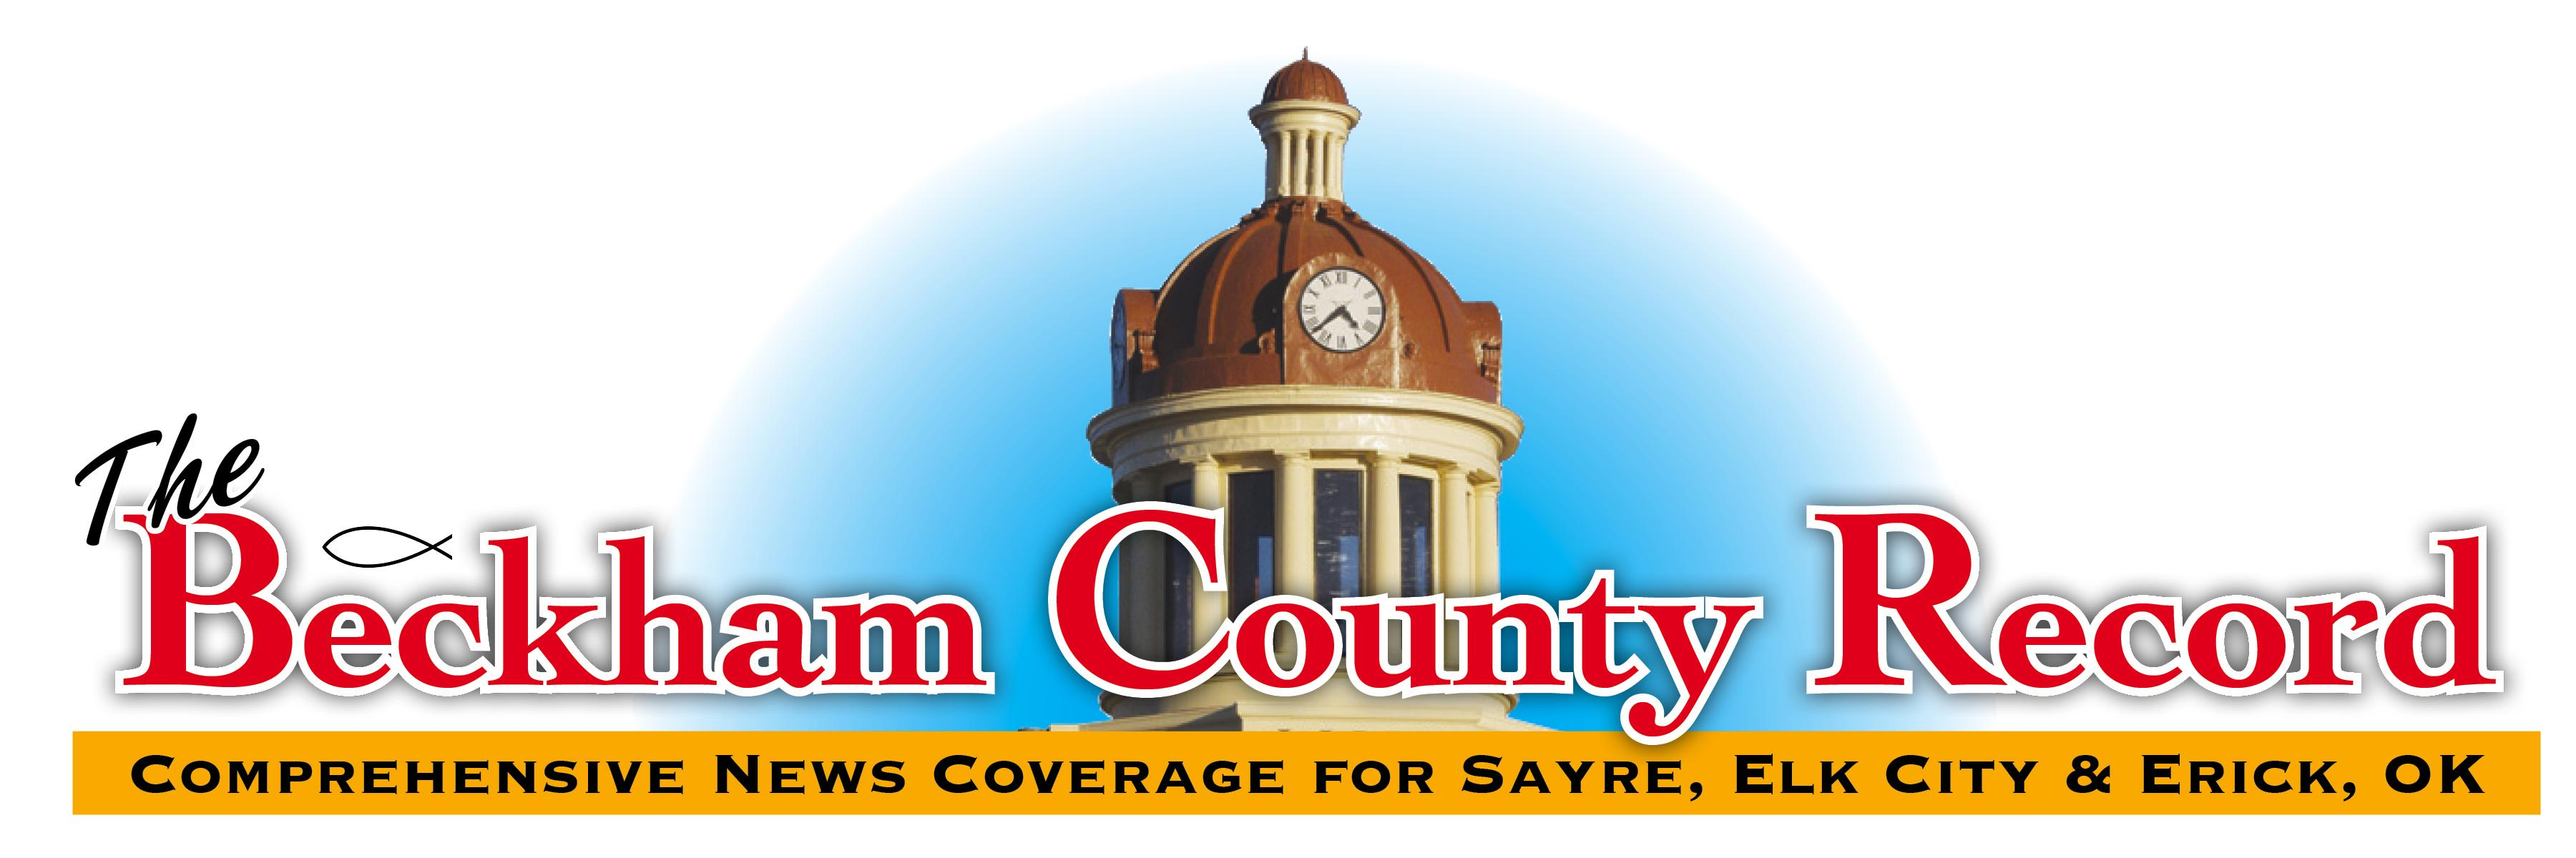 The Beckham County Record Logo